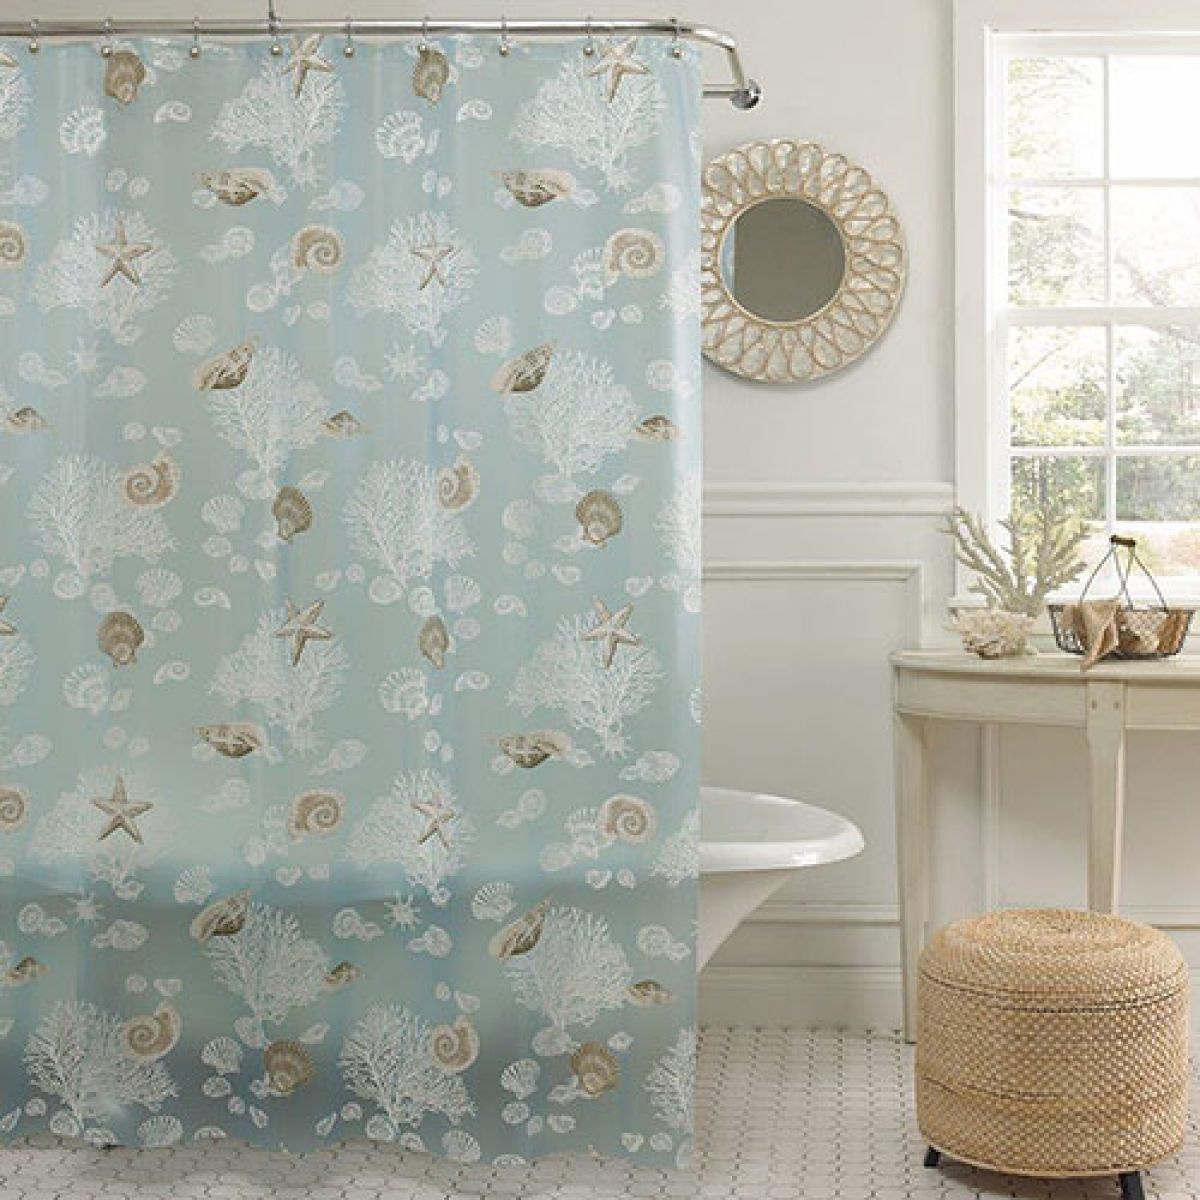 Boscov's Shower Curtains Seafoam Shells Peva Shower Curtain Boscov S Sea Foam Bathroom